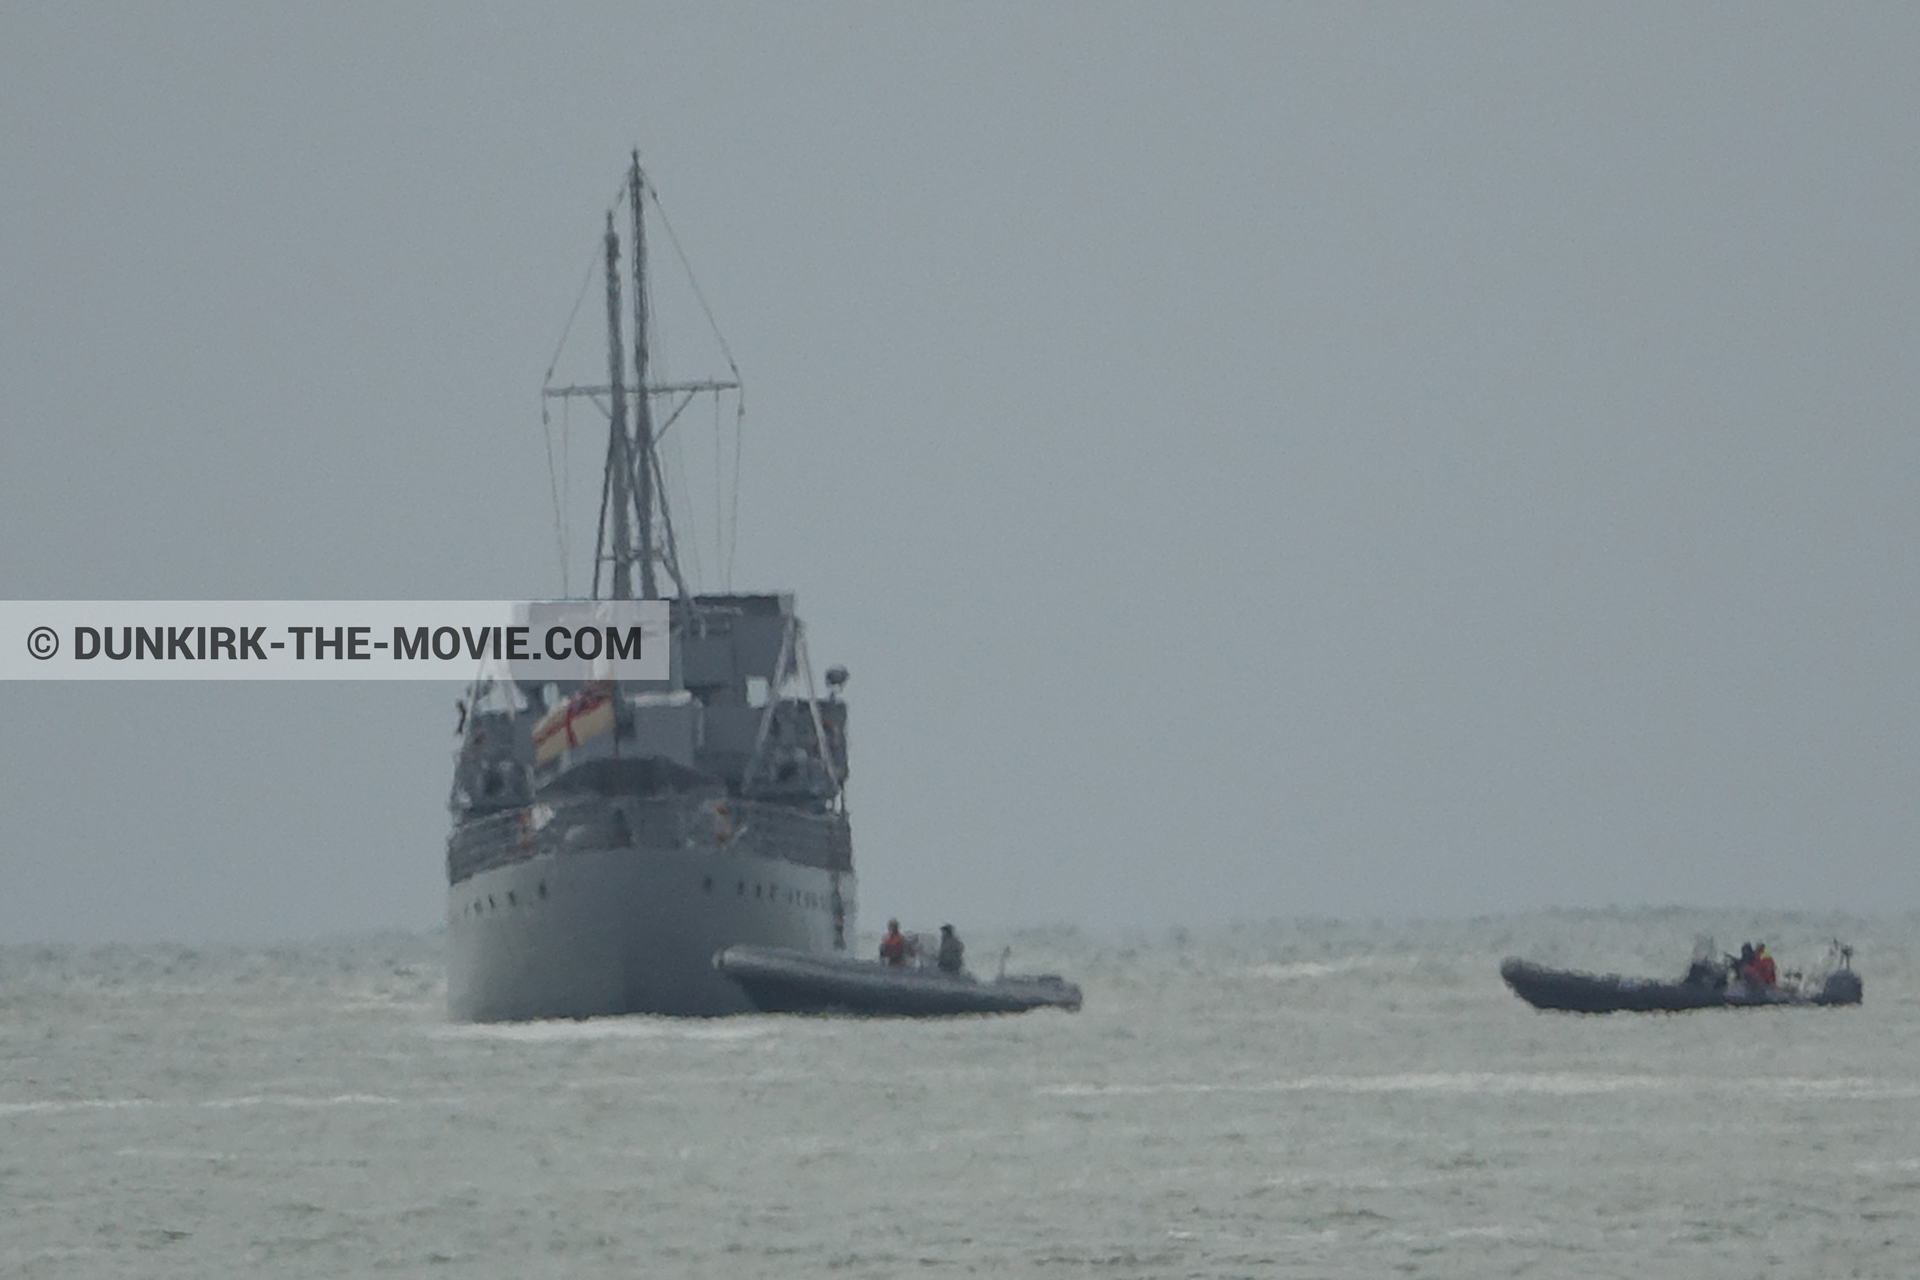 Picture with boat, grey sky, rough sea,  from behind the scene of the Dunkirk movie by Nolan